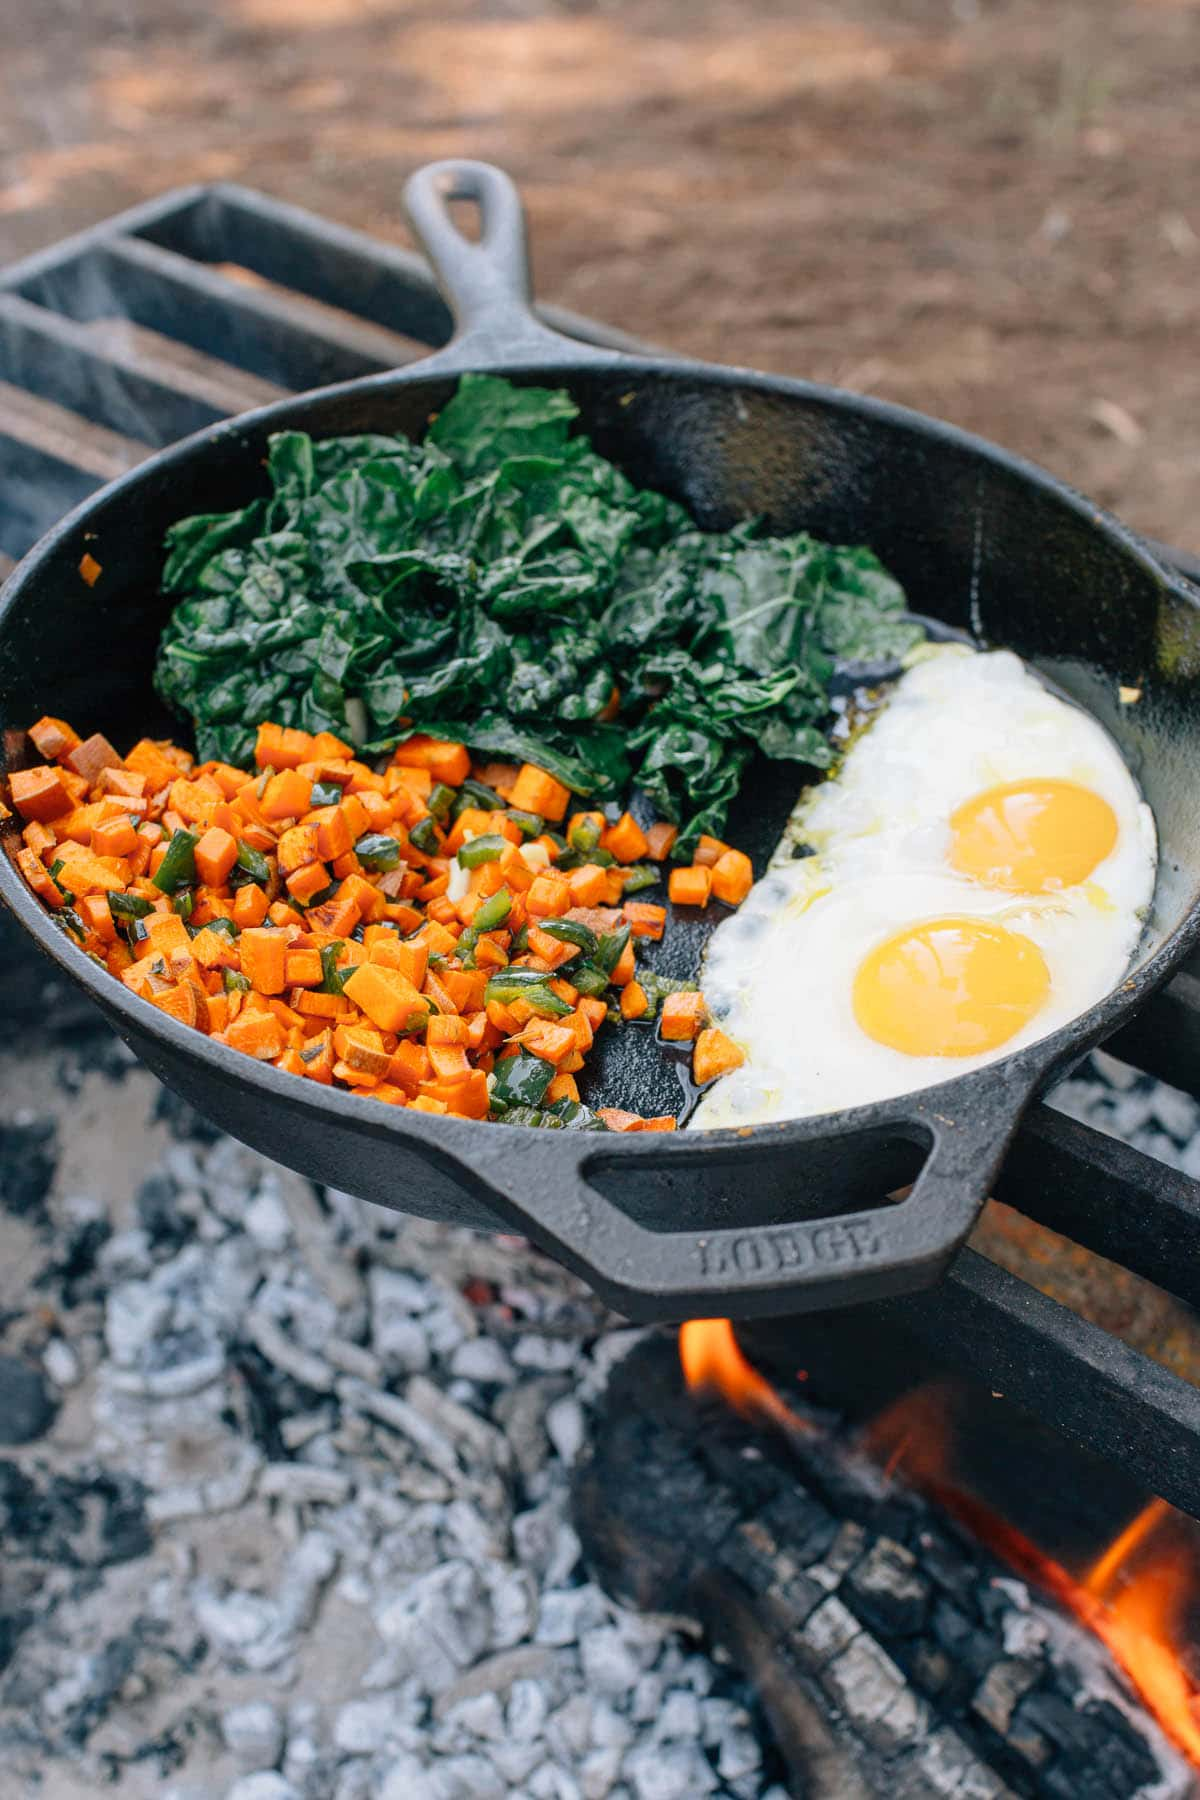 Breakfast hash and eggs in a cast iron skillet over a campfire